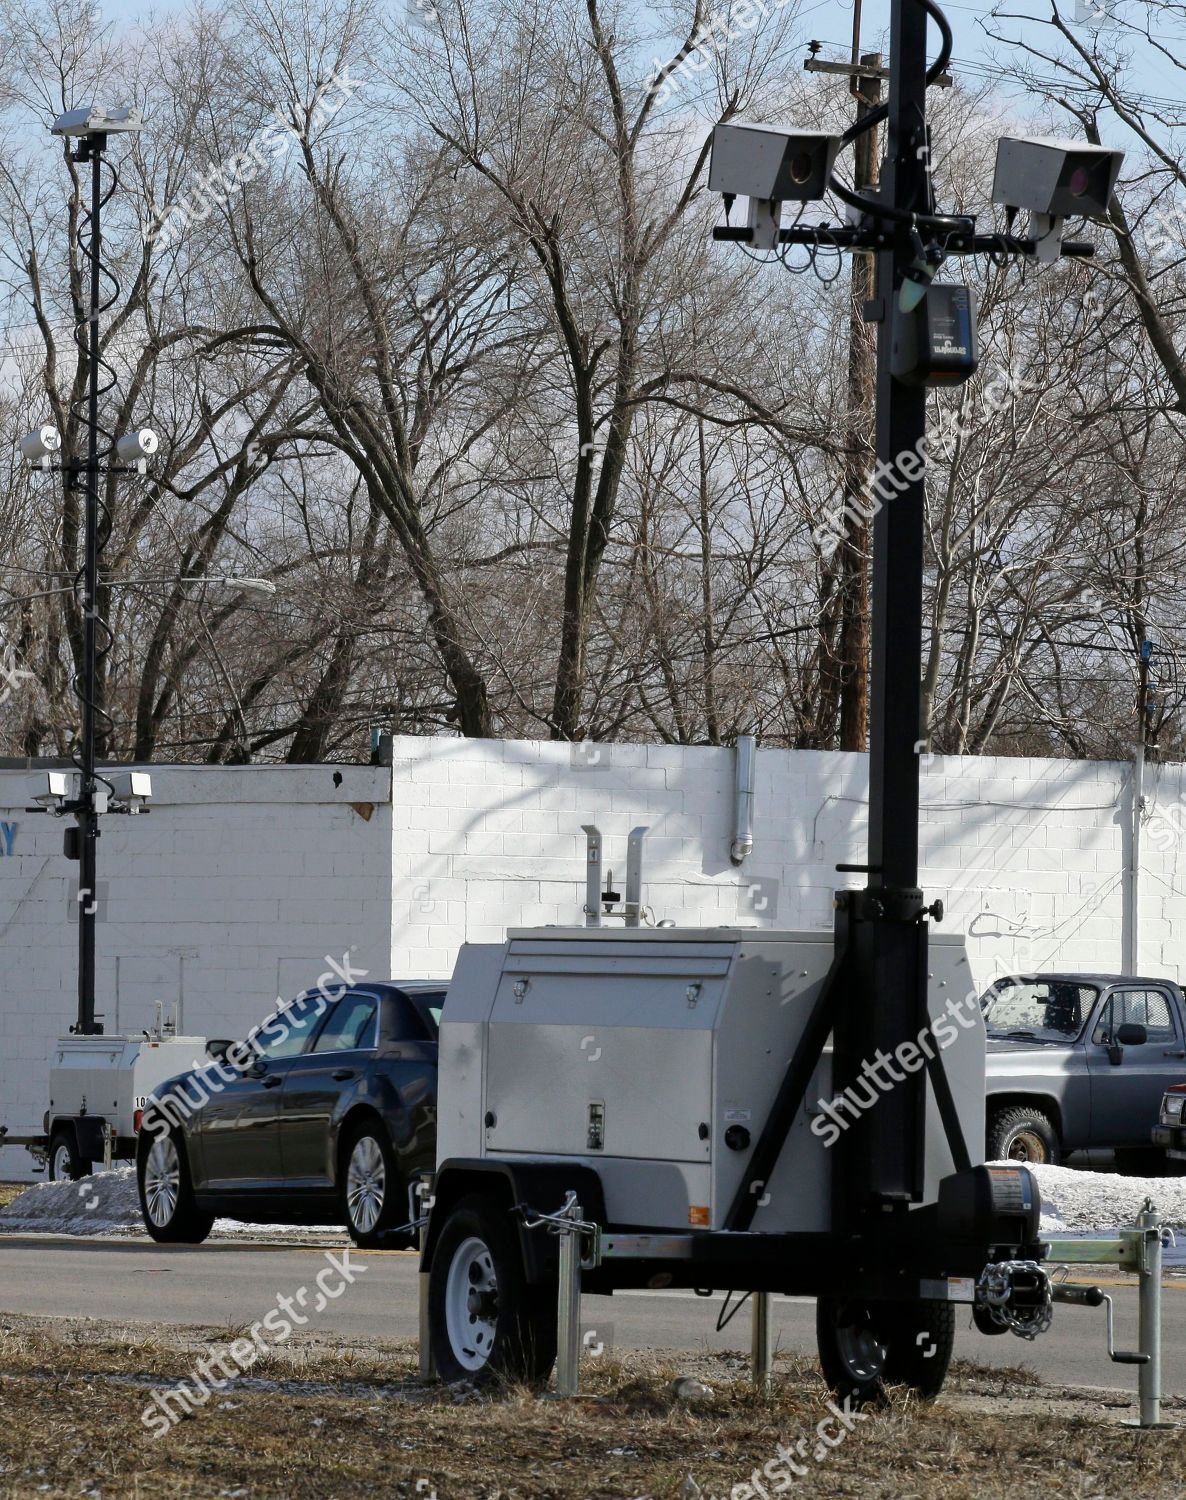 pair speed cameras aimed opposite directions on Editorial Stock